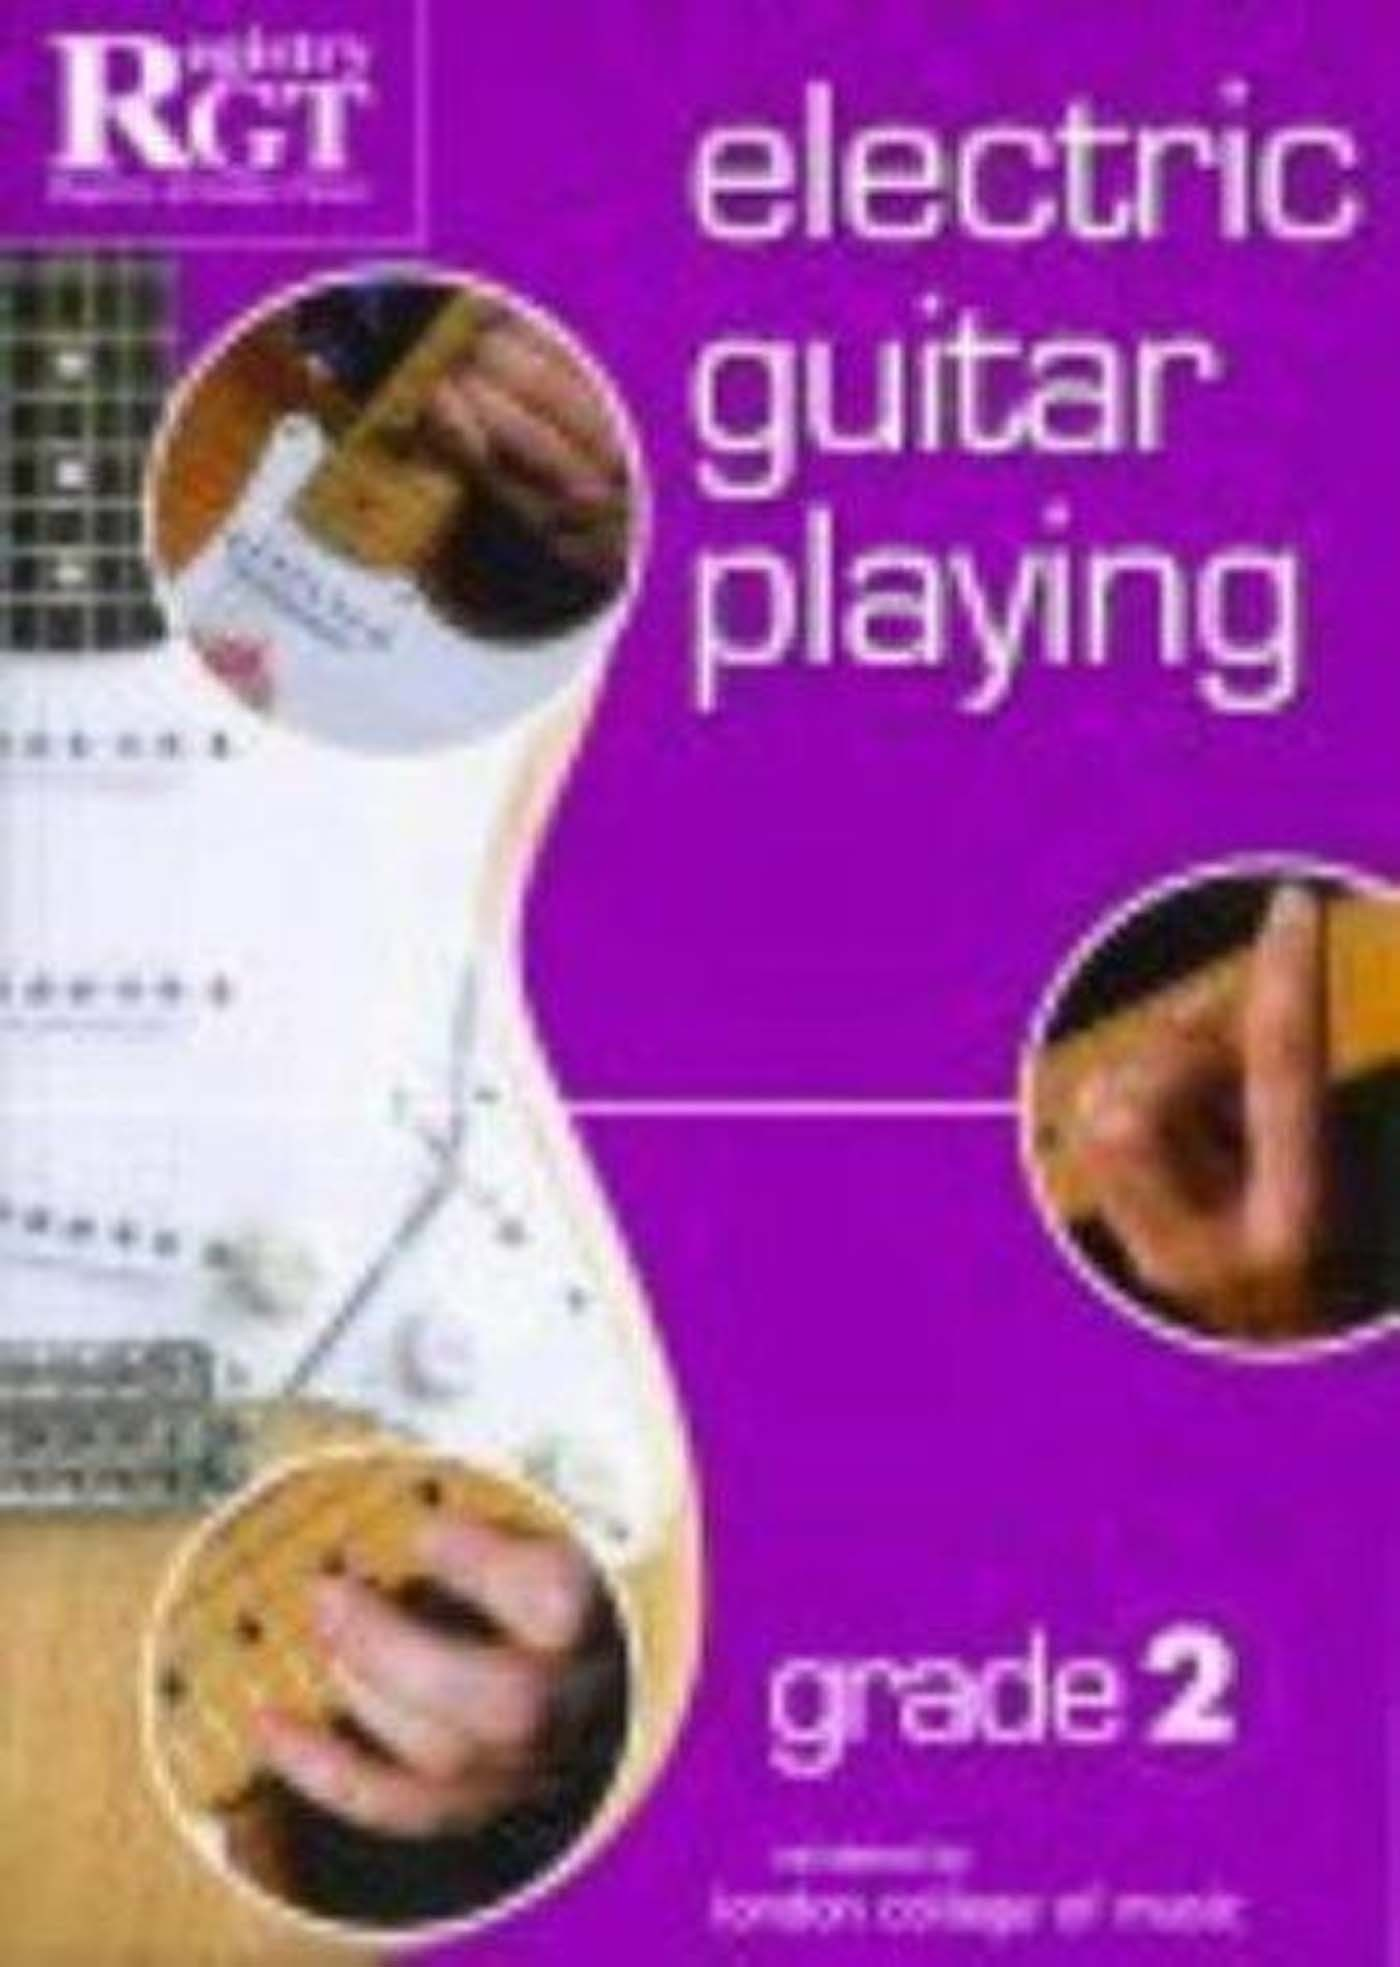 RGT Exam Electric Guitar Playing LCM Grade Book 2 Tony Skinner S98